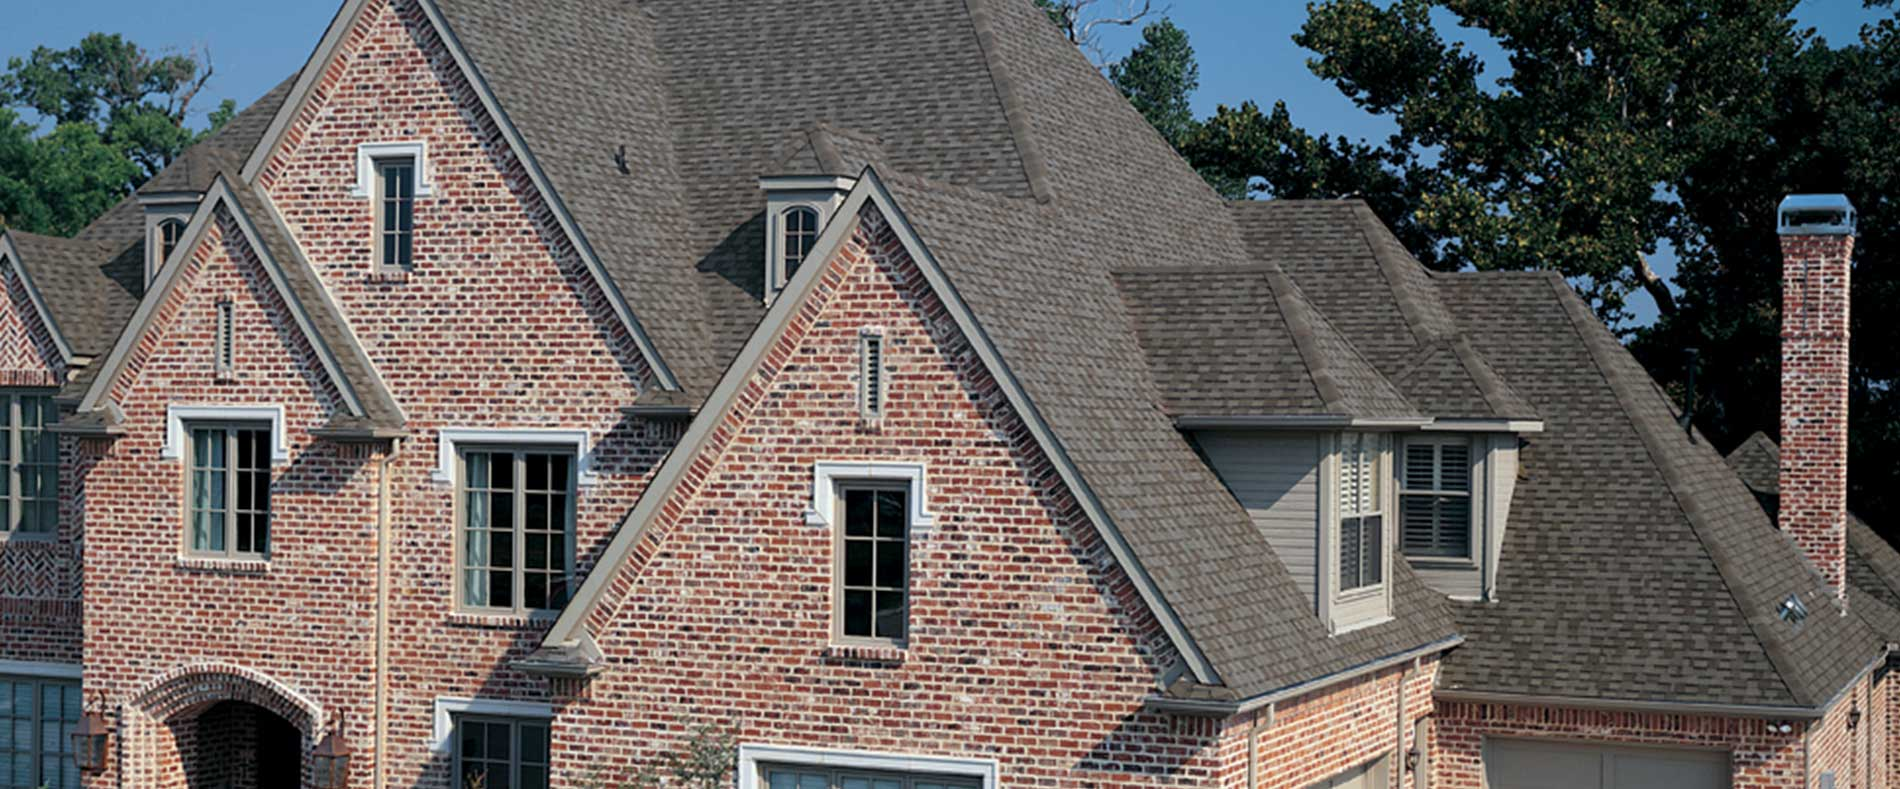 Fiberglass Asphalt Shingles<br/>Plano, TX & The Woodlands, TX